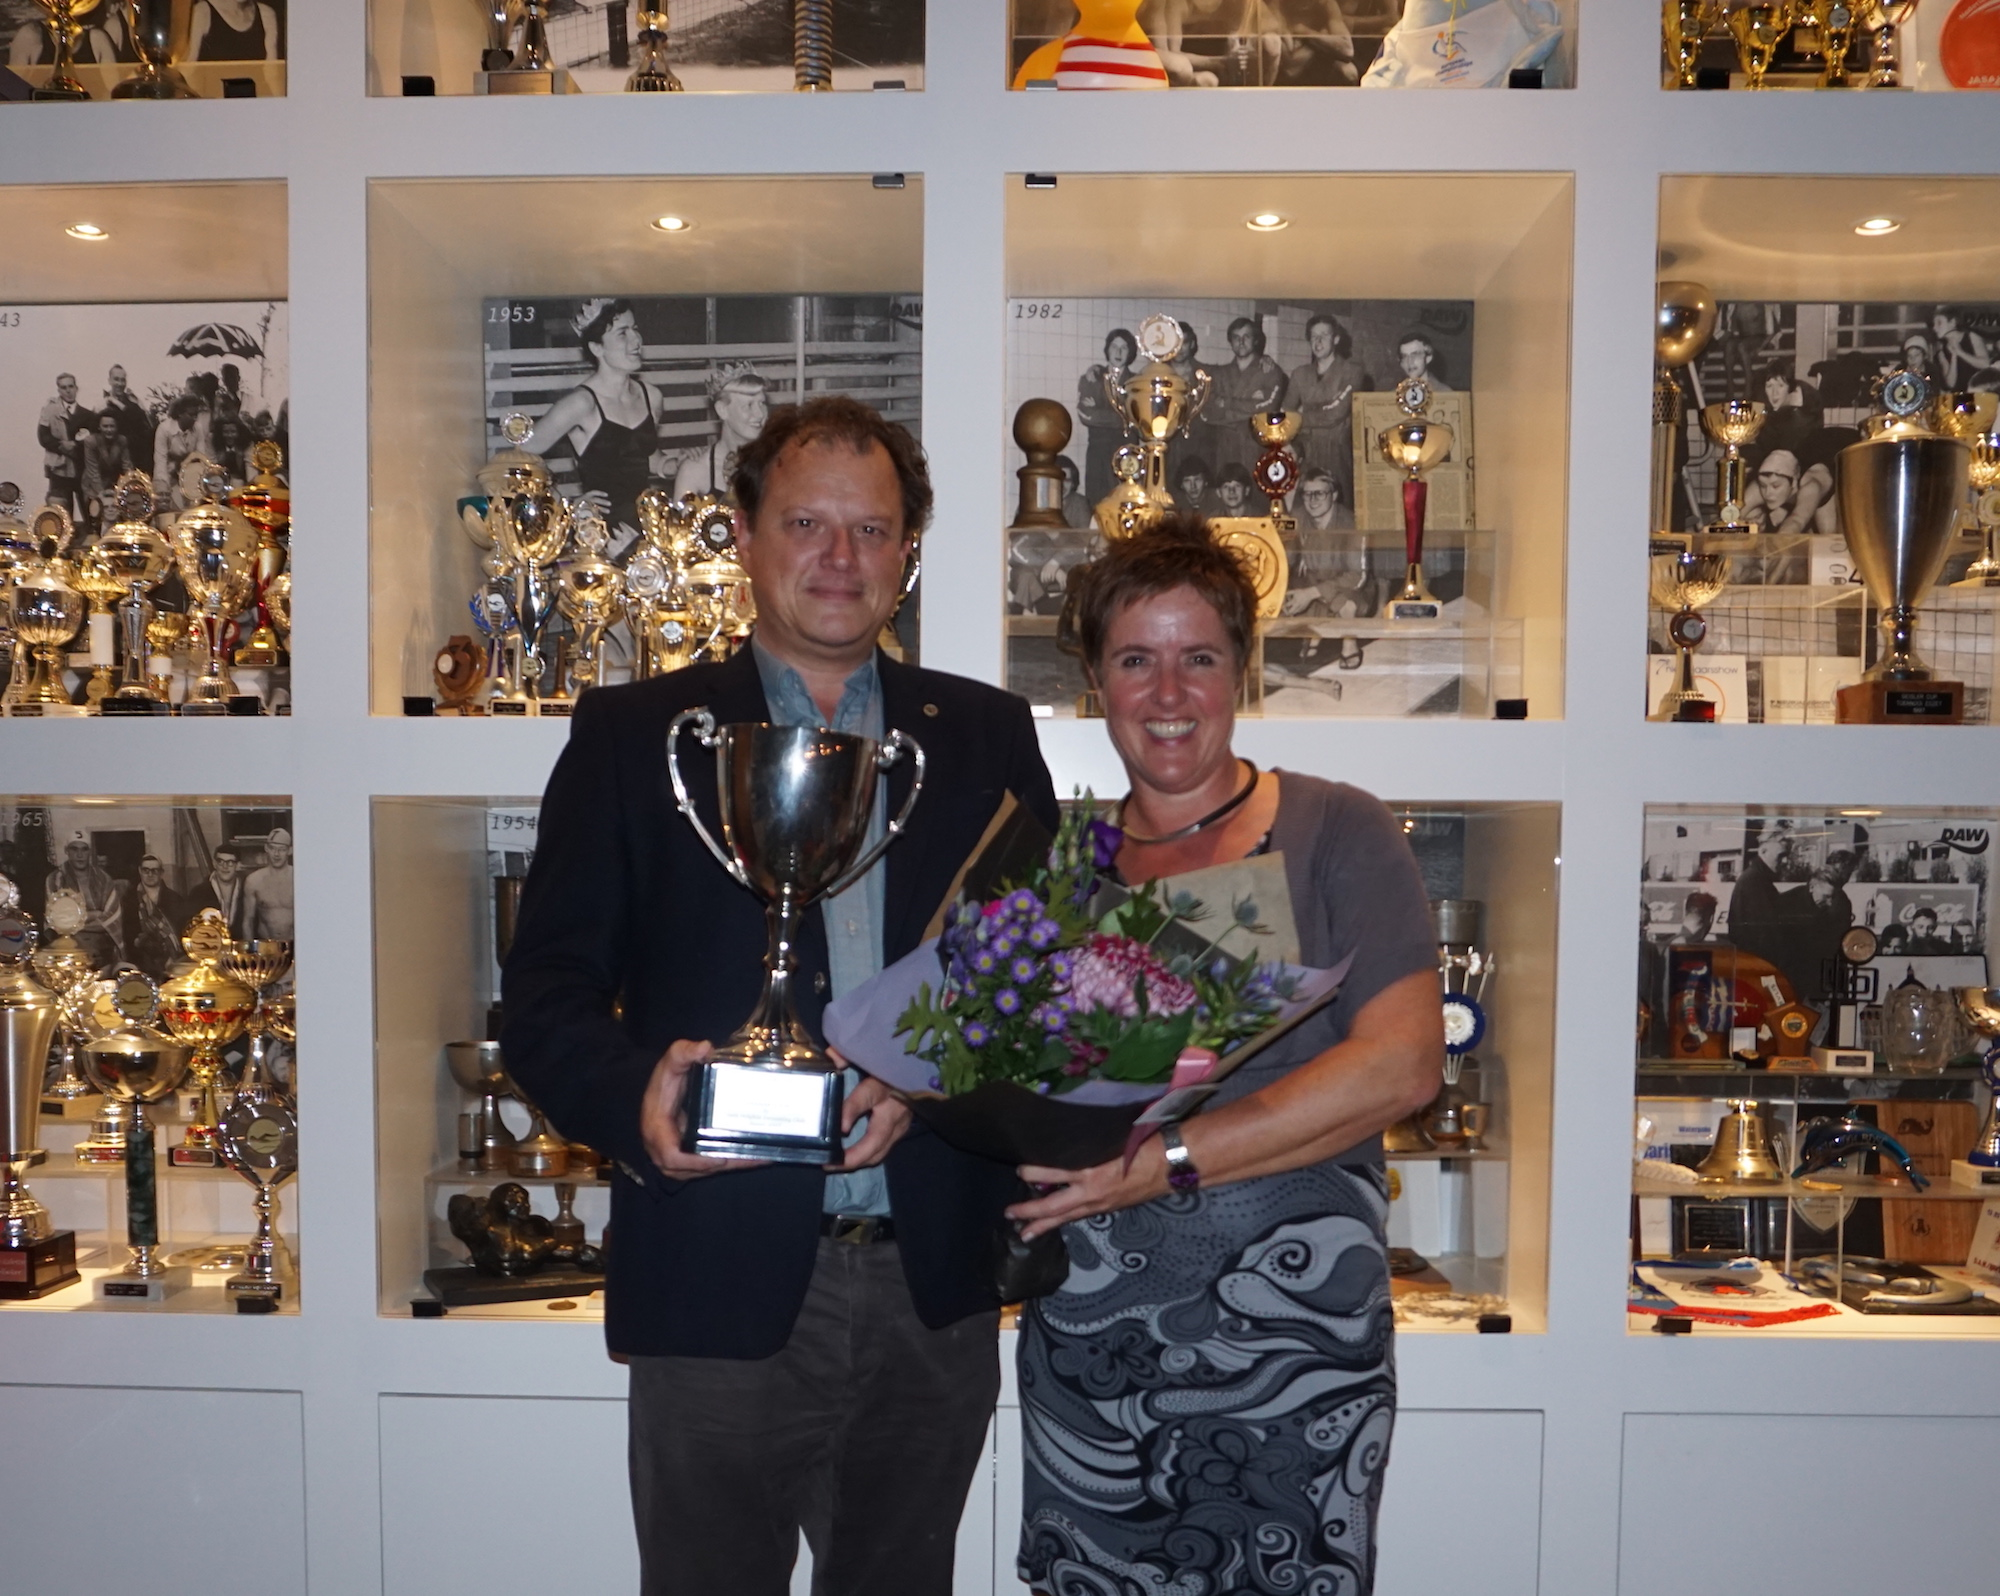 Volunteer of the Year Award voor Edwin de Bruijn en Adrienne Vermooten 001